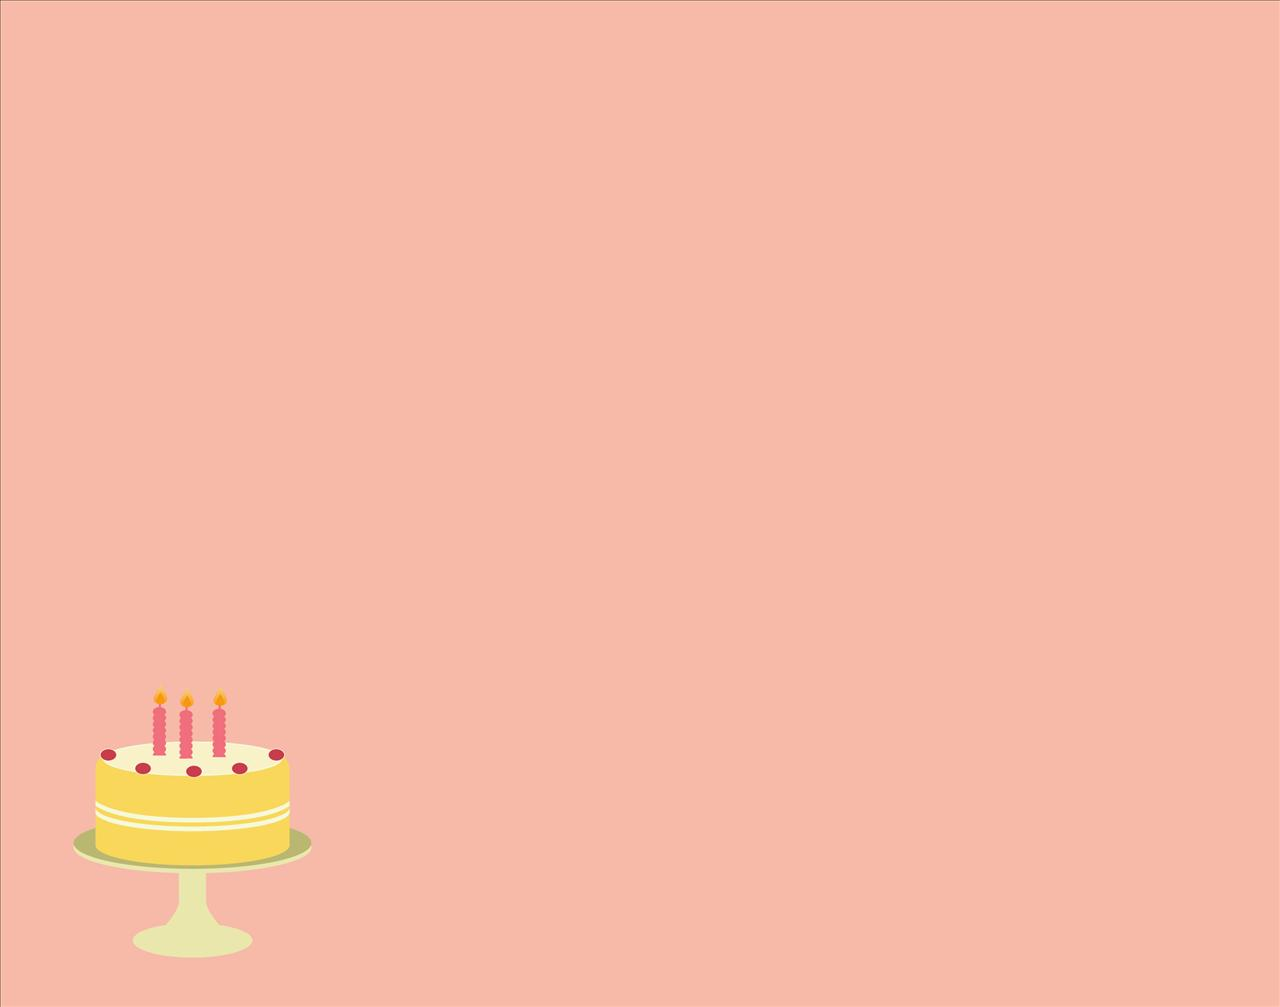 Light Pink Cake With Three Candles Birthday Party Celebration 1280x1007